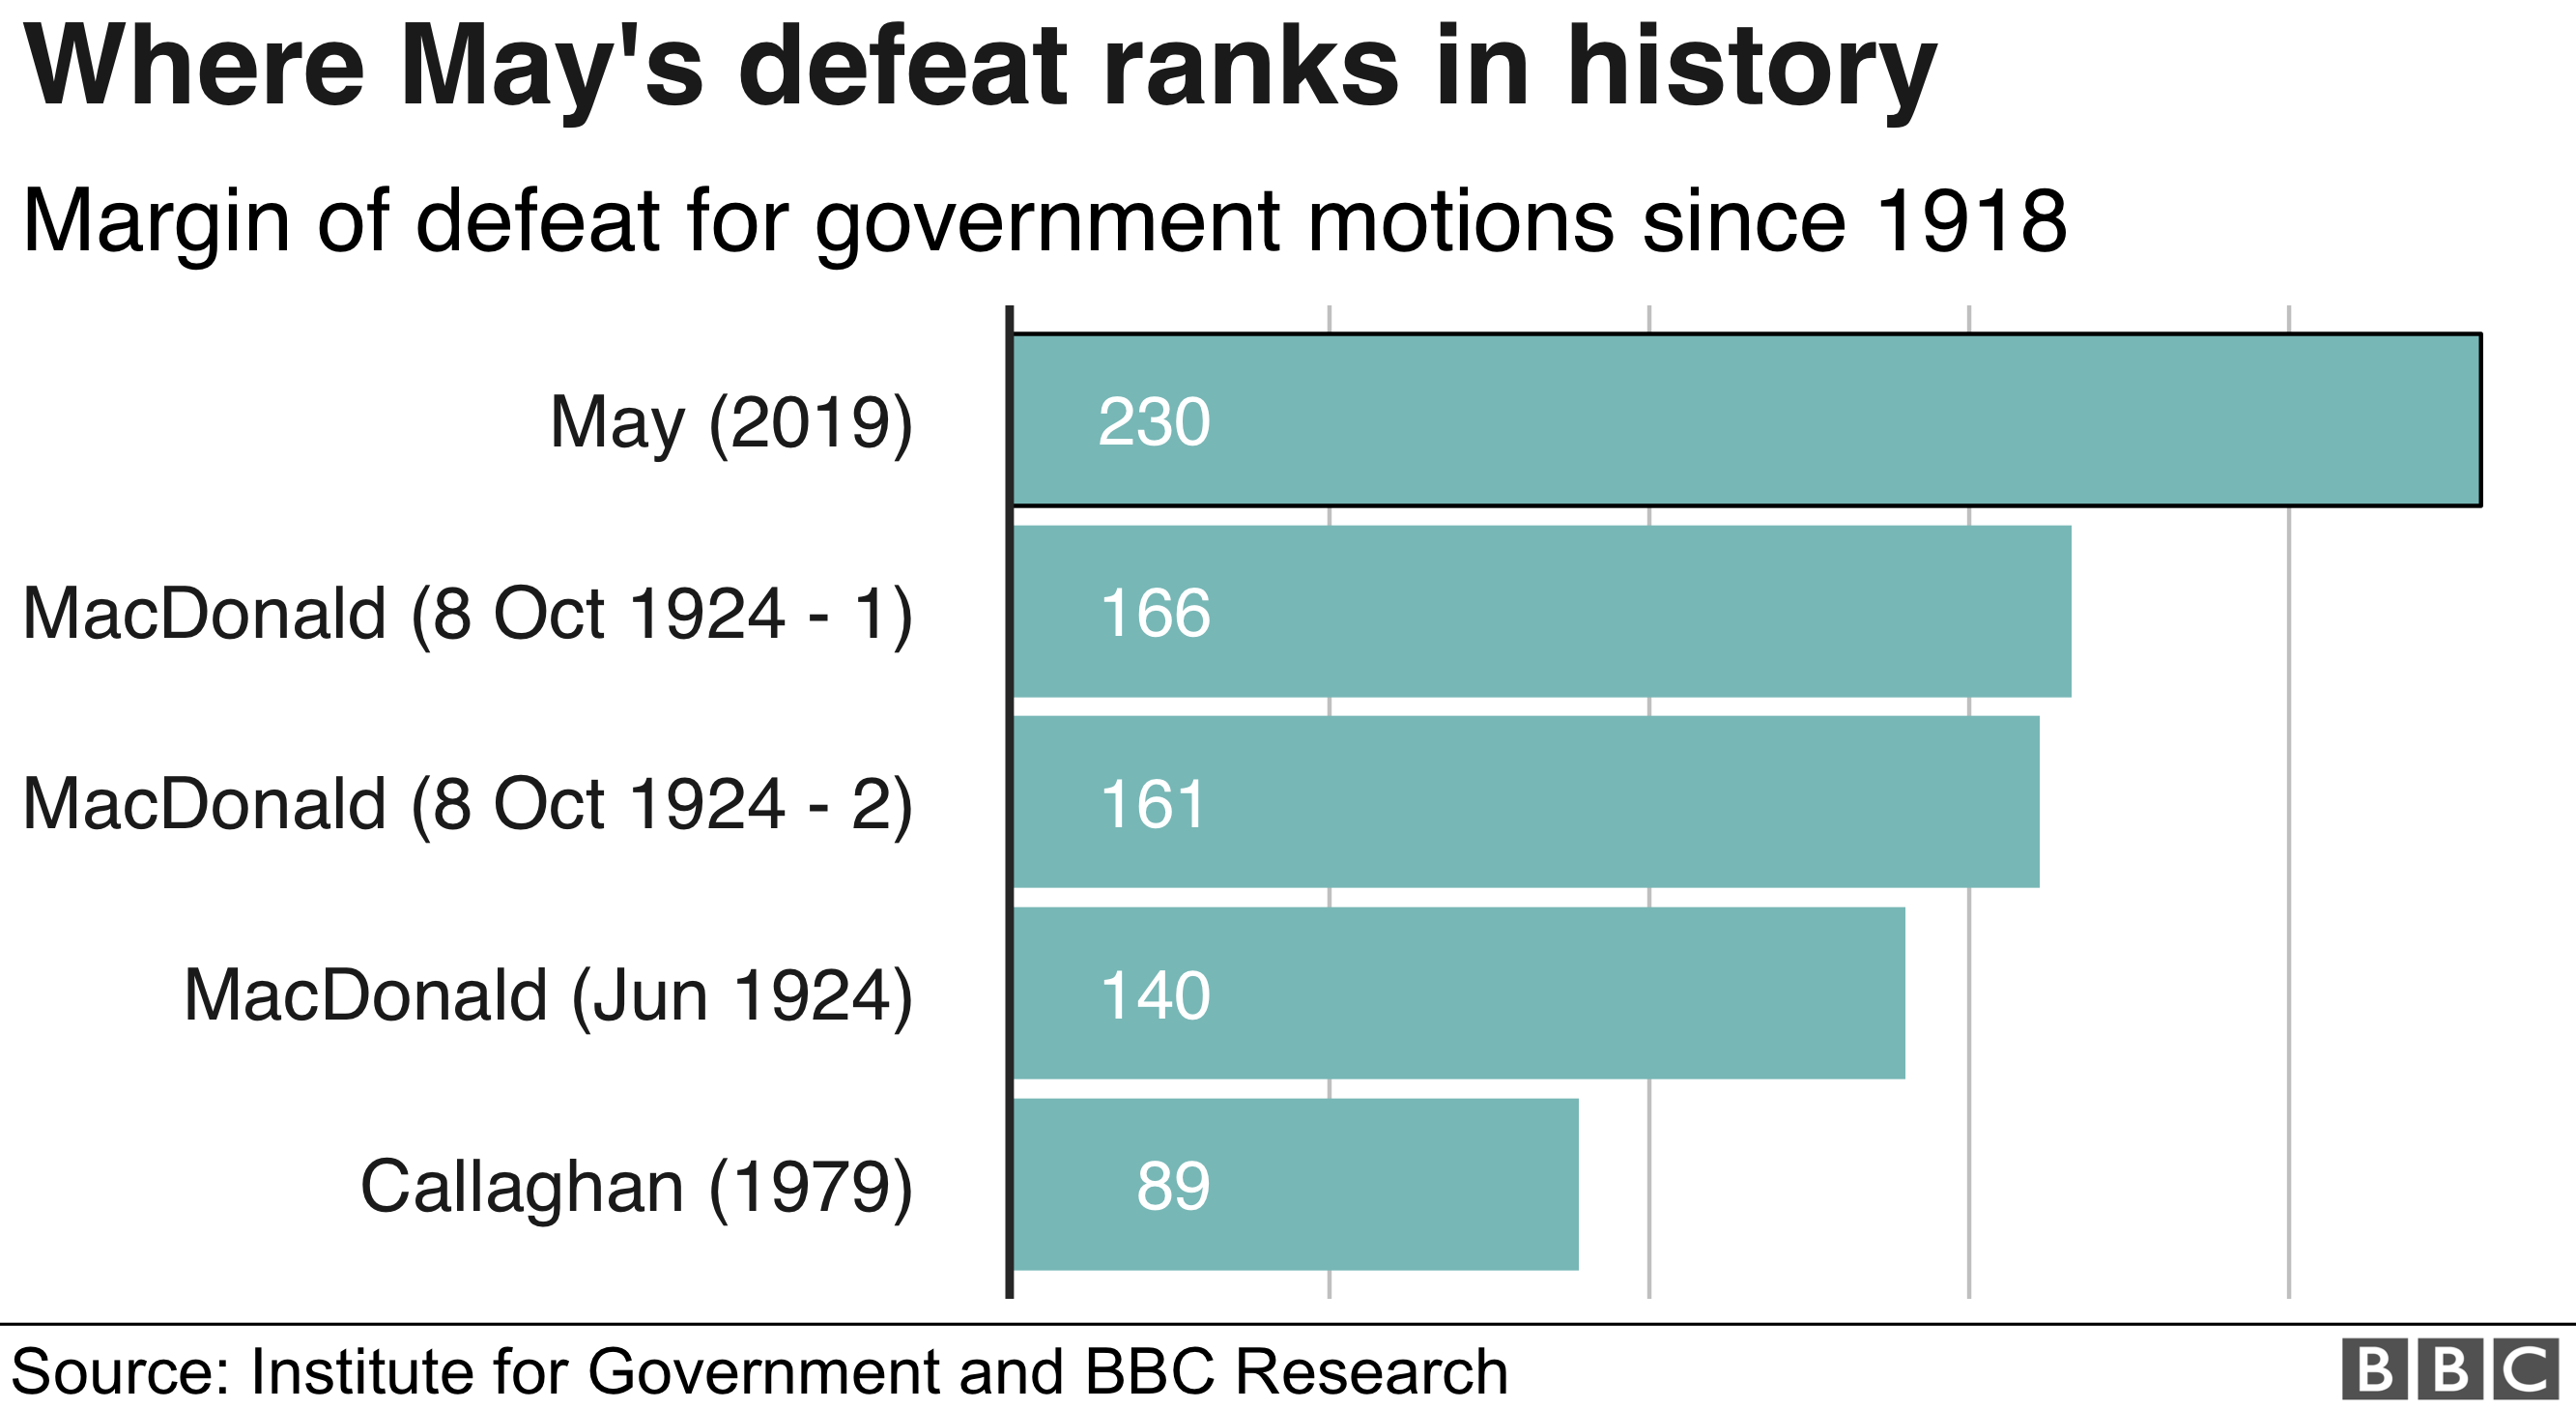 May's defeat is the biggest in history